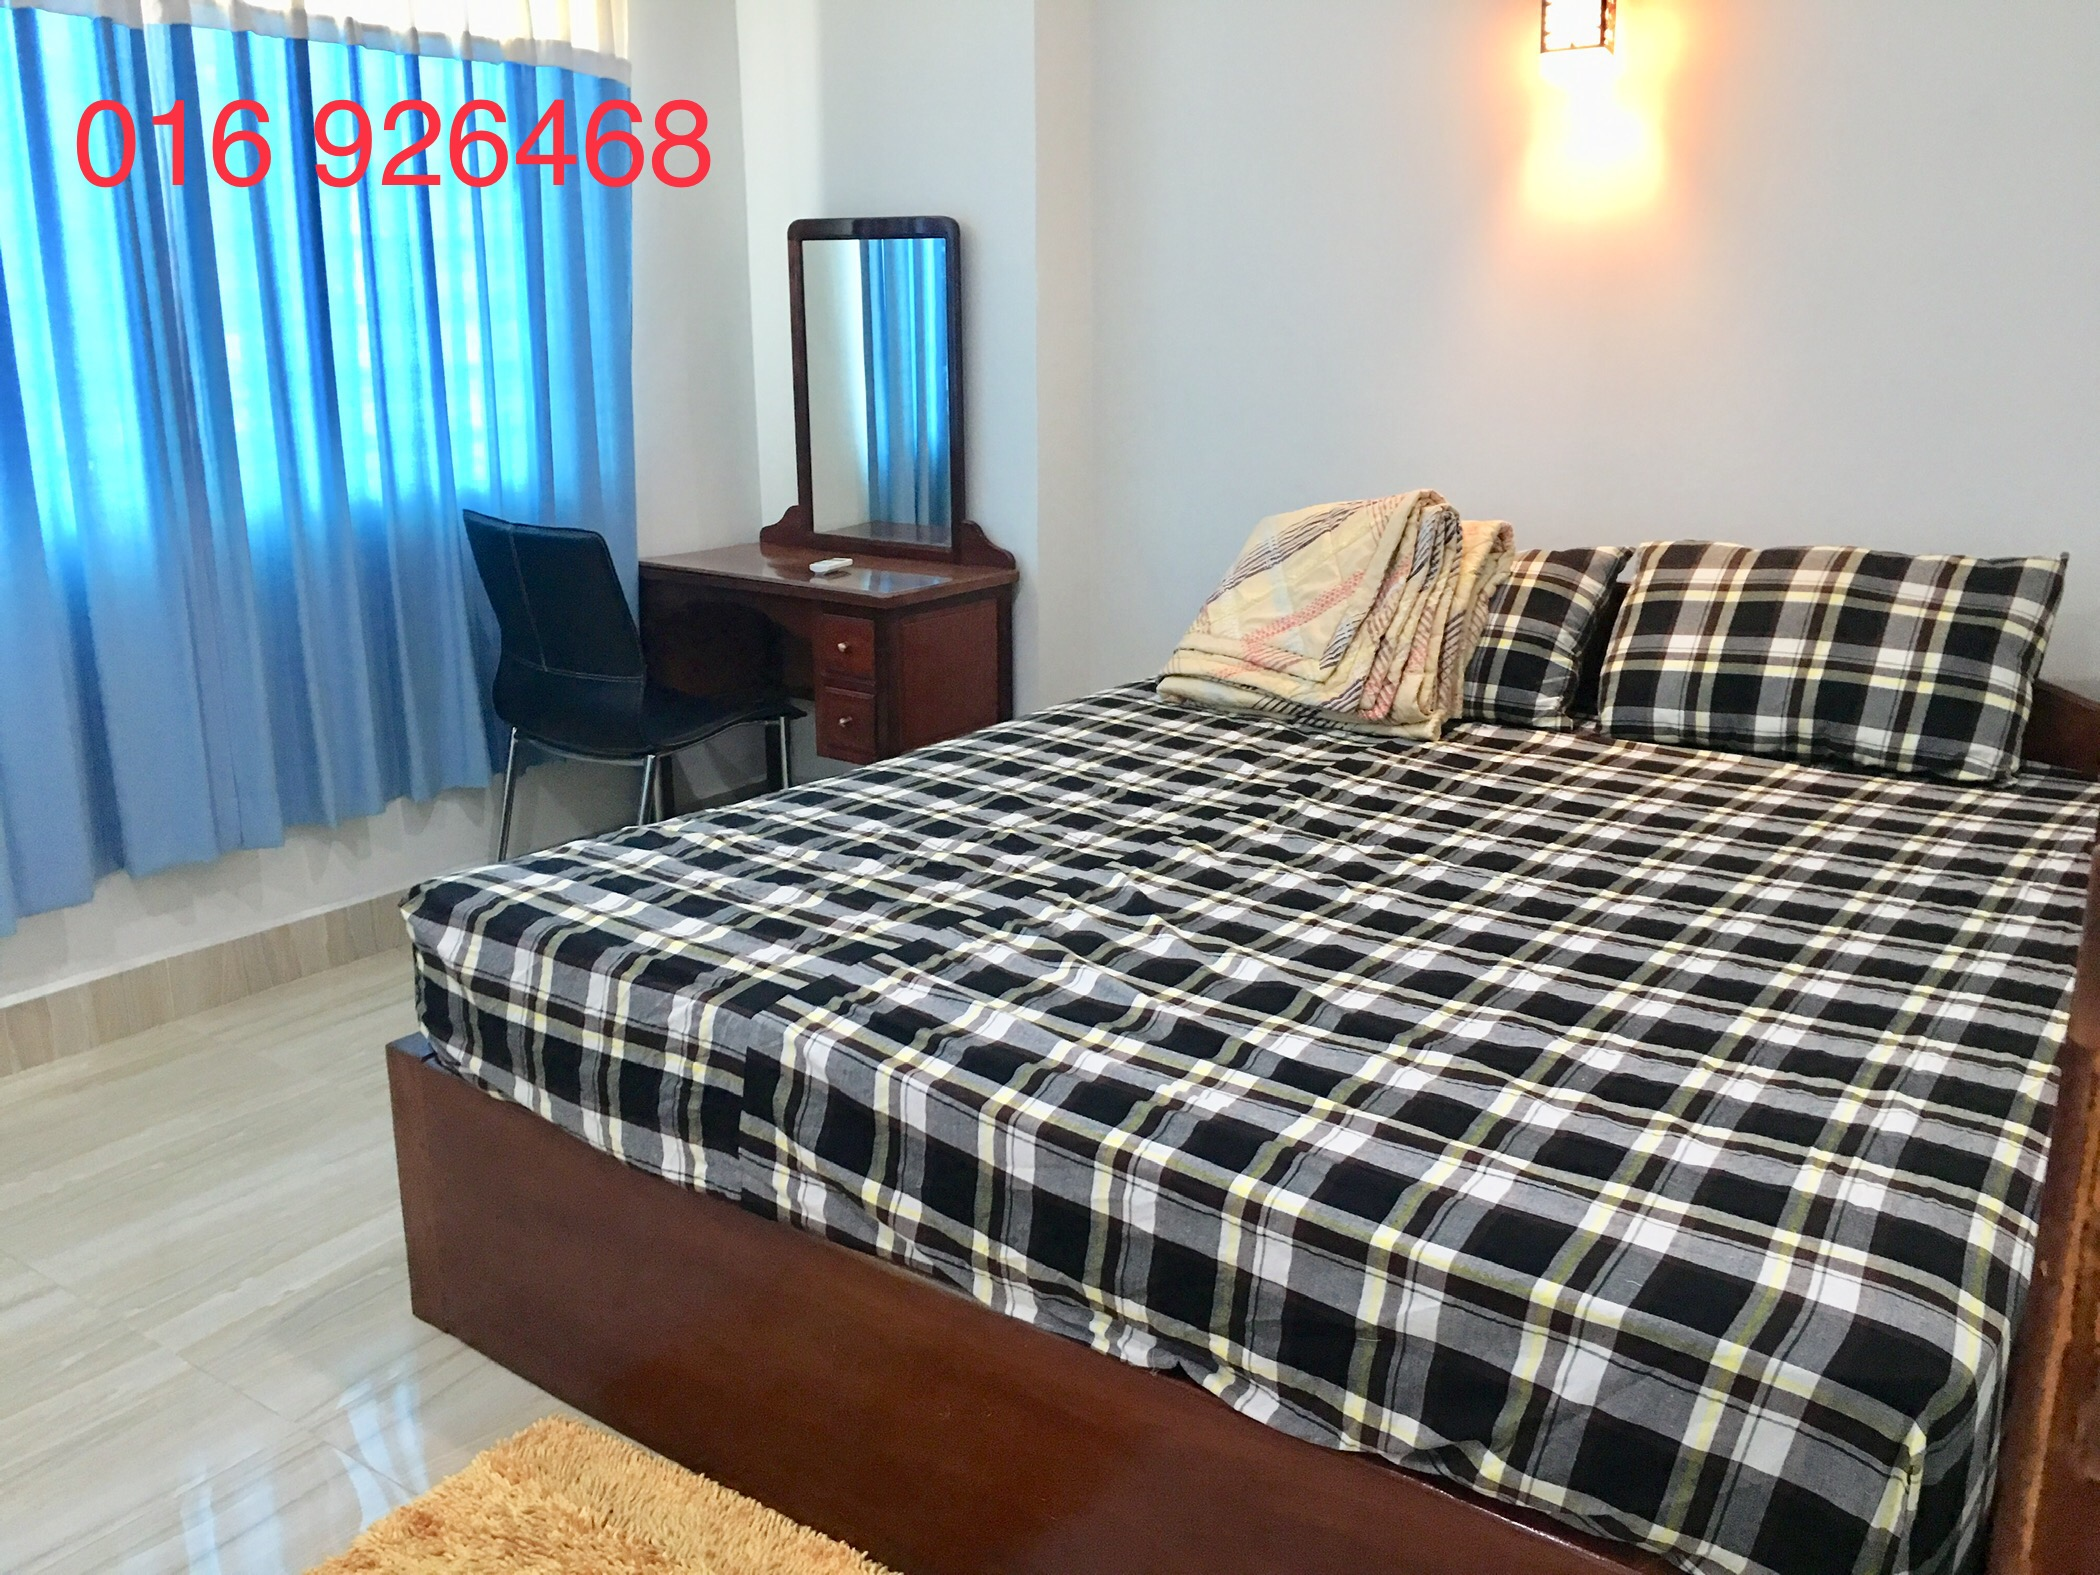 1 Bedroom Fully Furnished Elevator Apartment in Tuol Kork for Rent